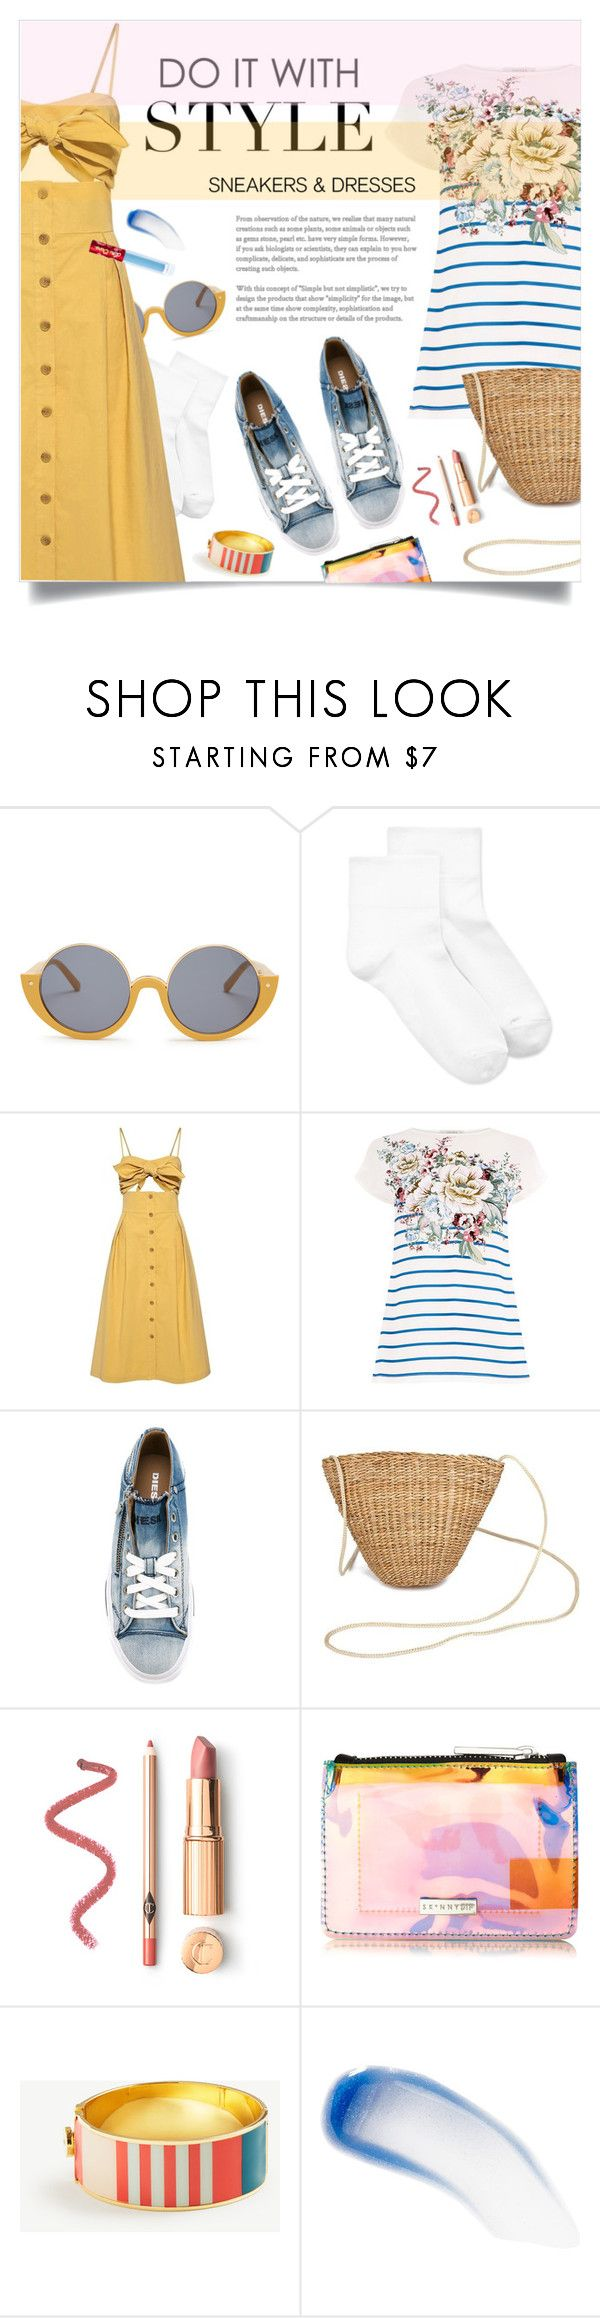 """Cutout dress and denim sneaker"" by laste-co ❤ liked on Polyvore featuring Marni, Hue, Sea, New York, Diesel, Ann Taylor, Lipstick Queen and Lime Crime"